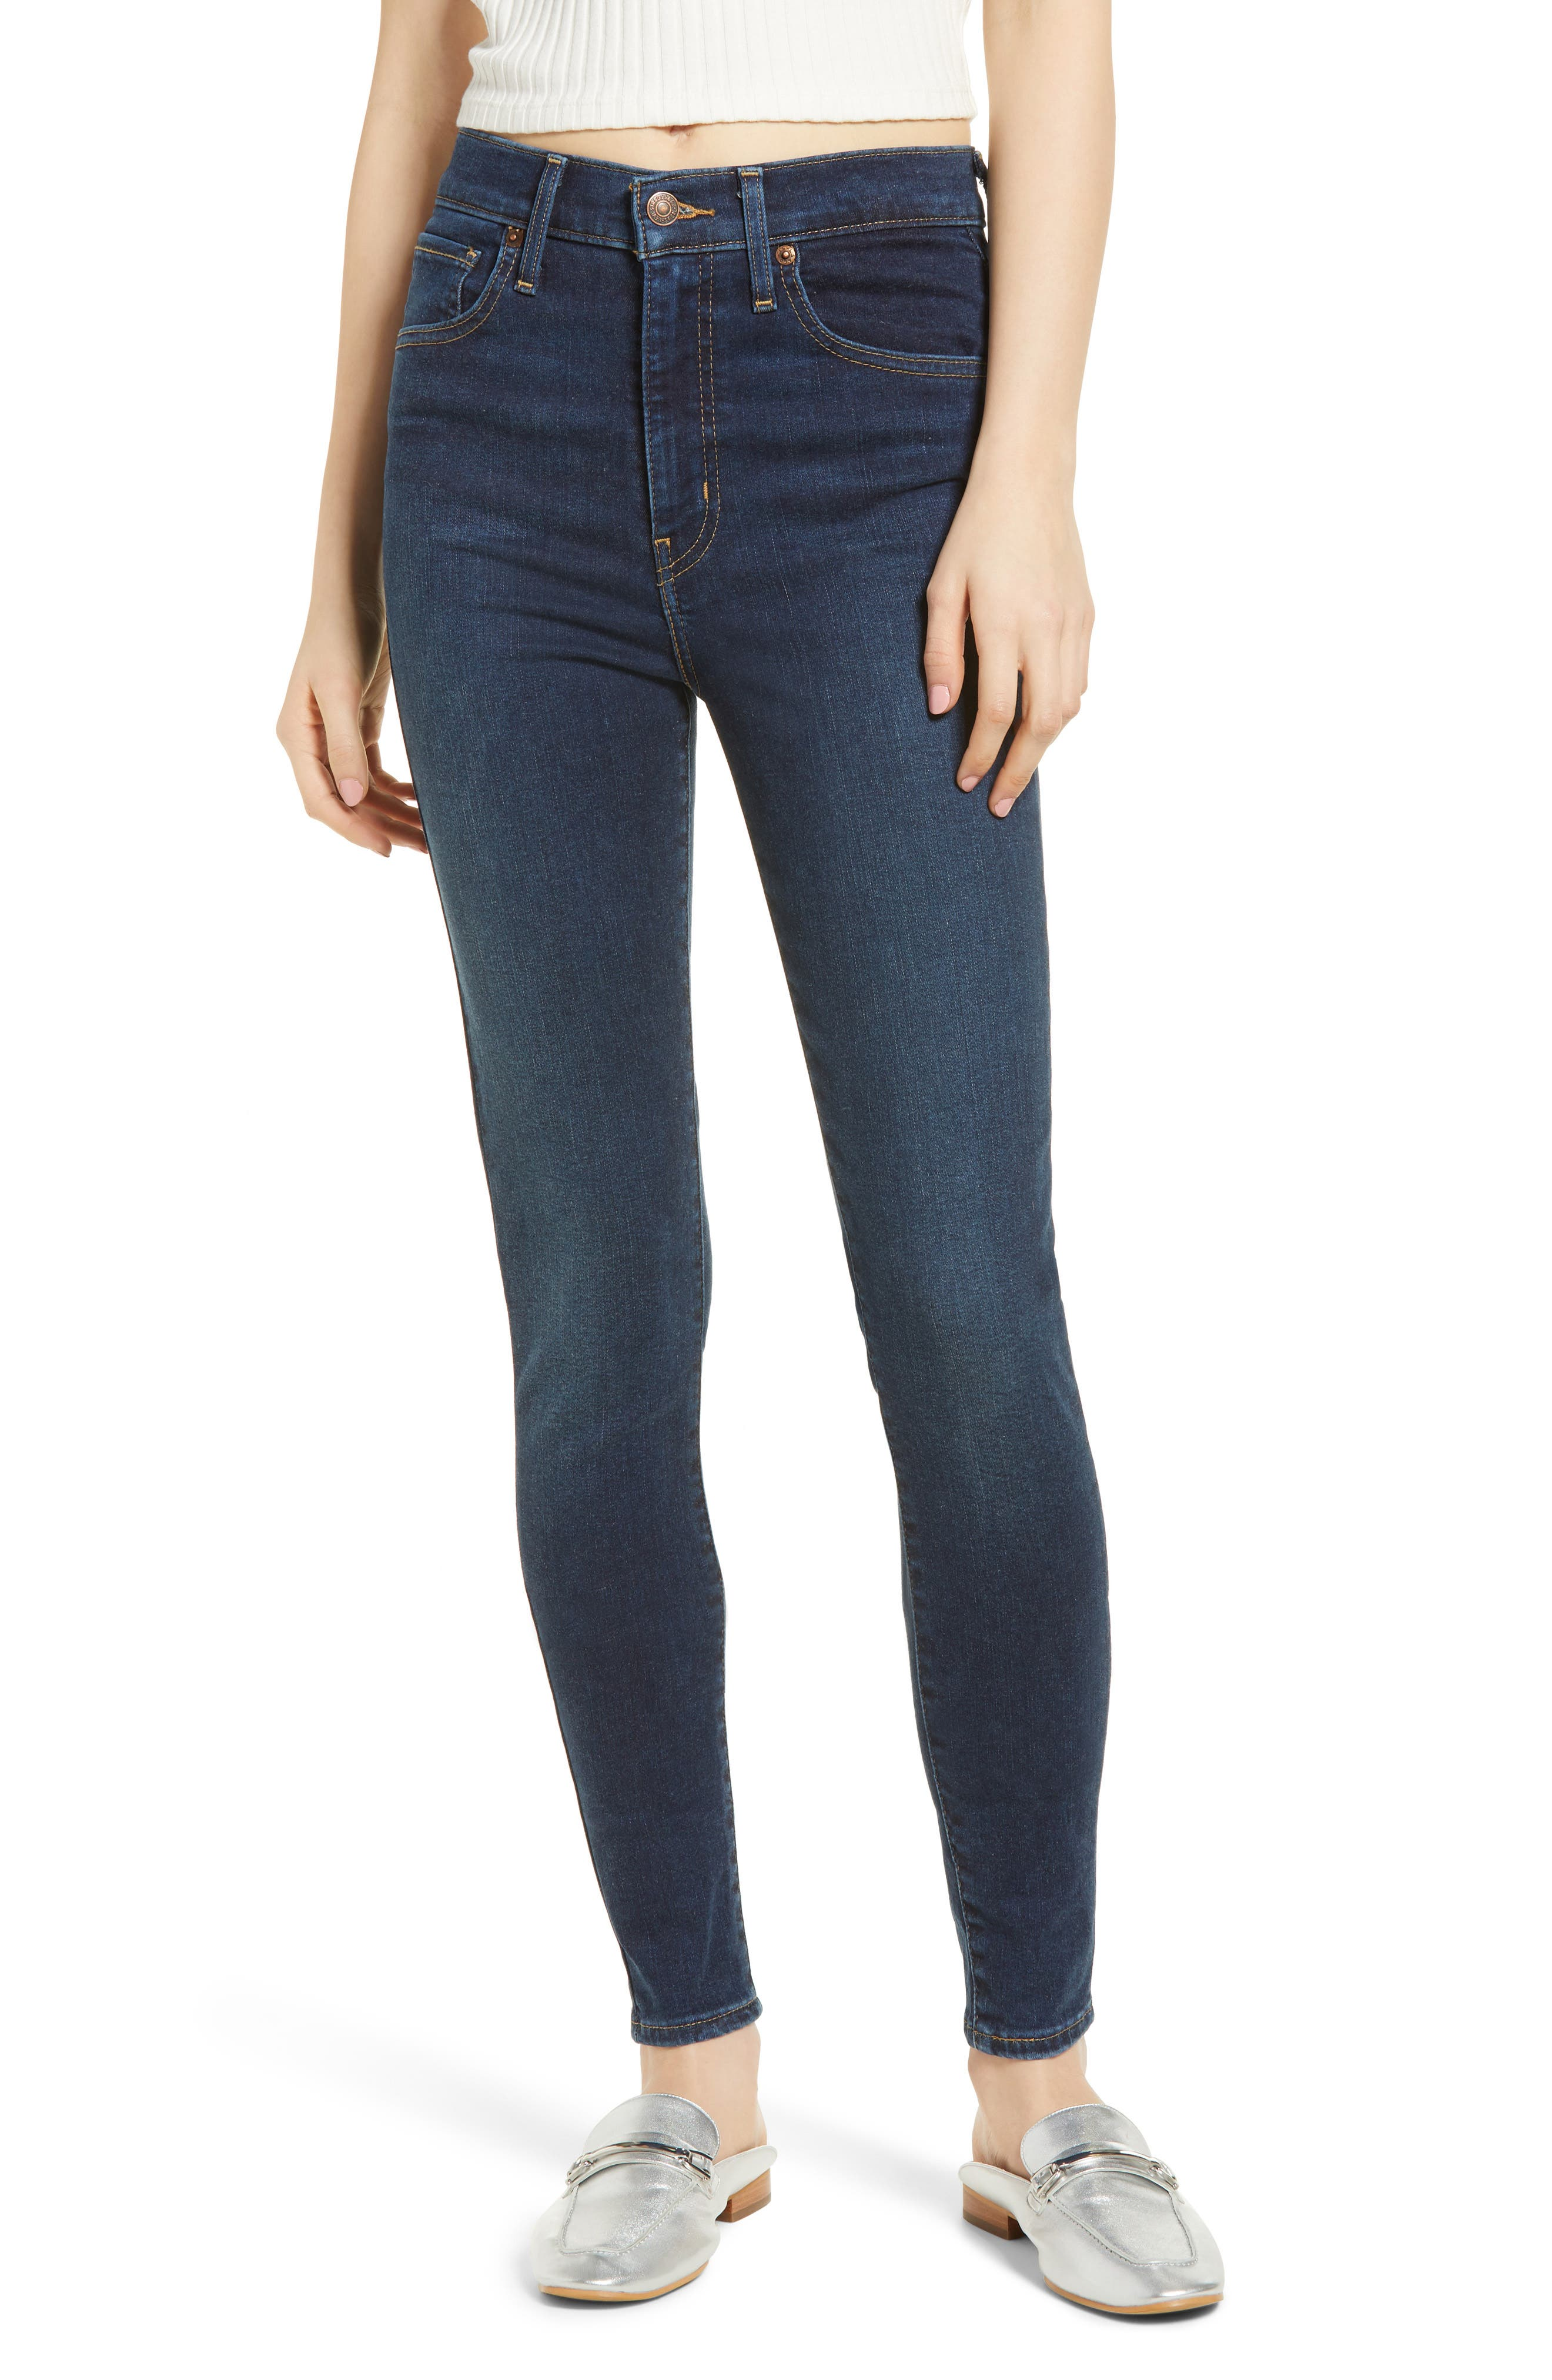 Alternate Image 1 Selected - Levi's® Mile High Super Skinny Jeans (Jet Setter)